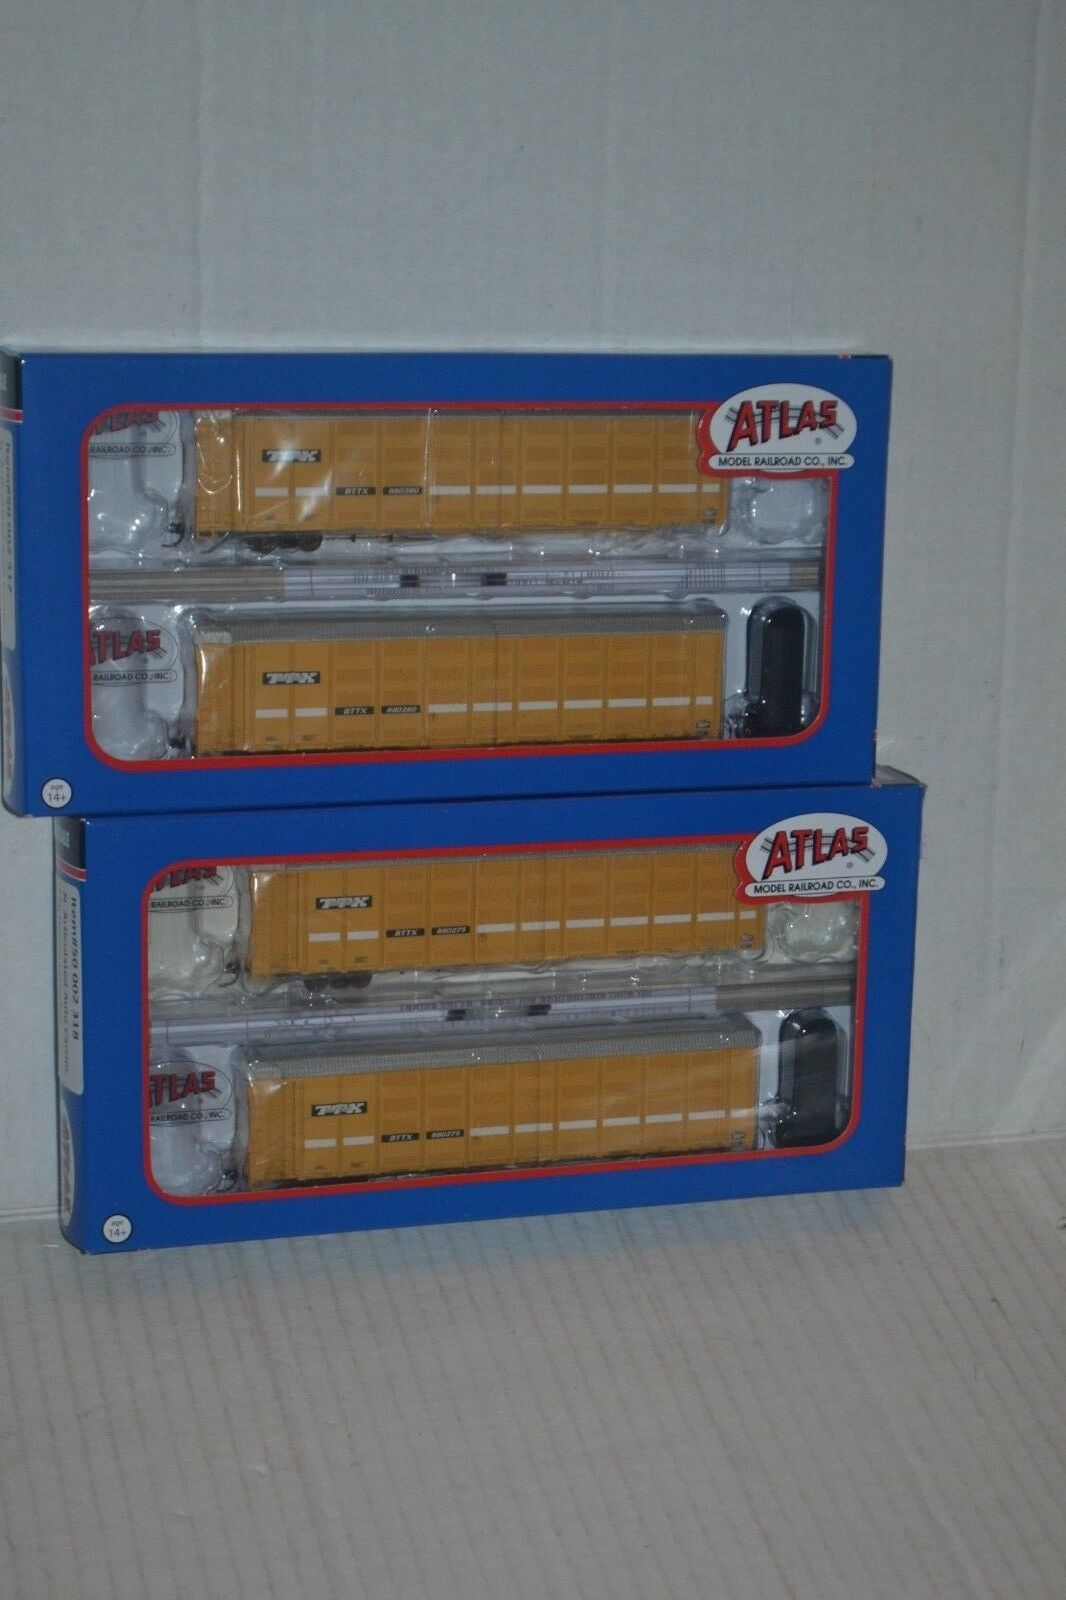 2 Atlas TTX Speed Lettering Articulated Auto Carrier N scale